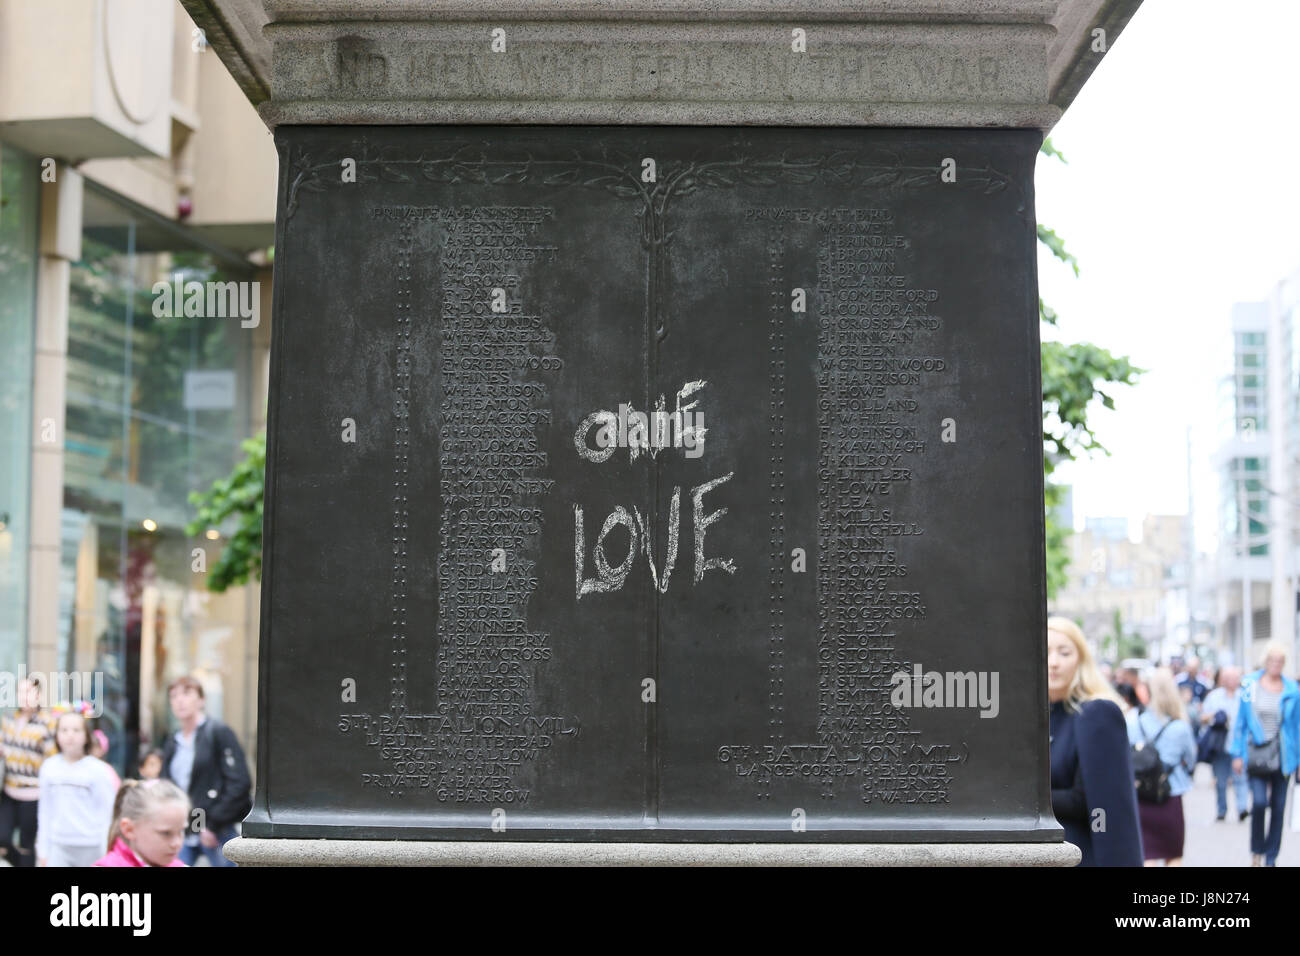 Manchester, UK. 29 mai, 2017. Un message enregistré qui dit 'One Love' sur le monument aux morts de Photo Stock